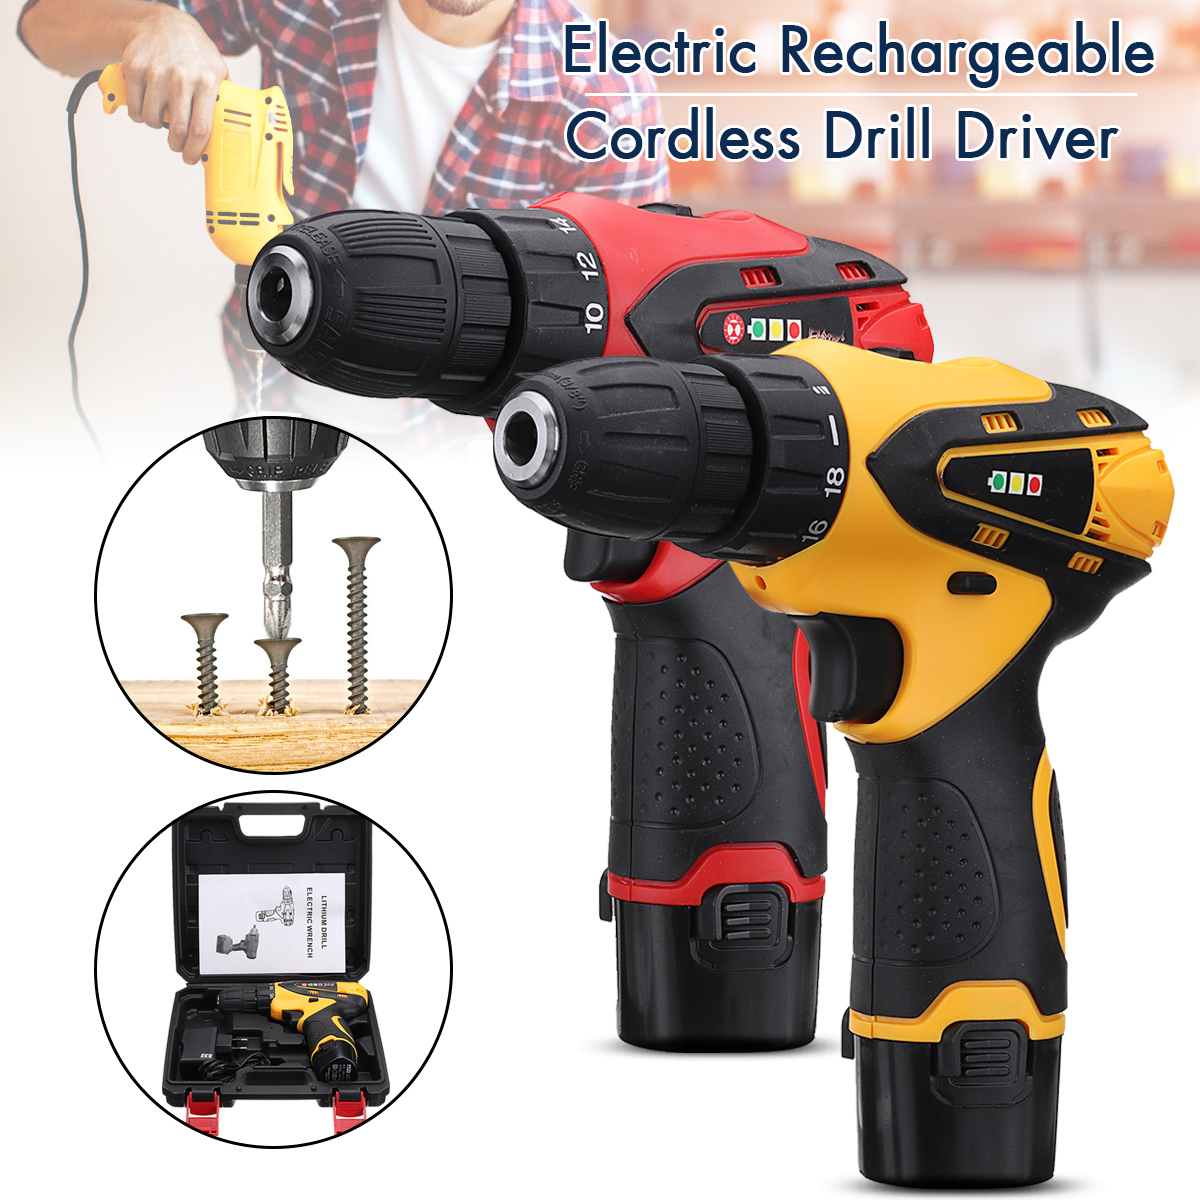 12V 1300rpm Electric Screwdriver Li Battery Rechargeable Multi-function 2 Speed Cordless Electric Drill Power Tools Box государственная символика флаг гребень 5 видов